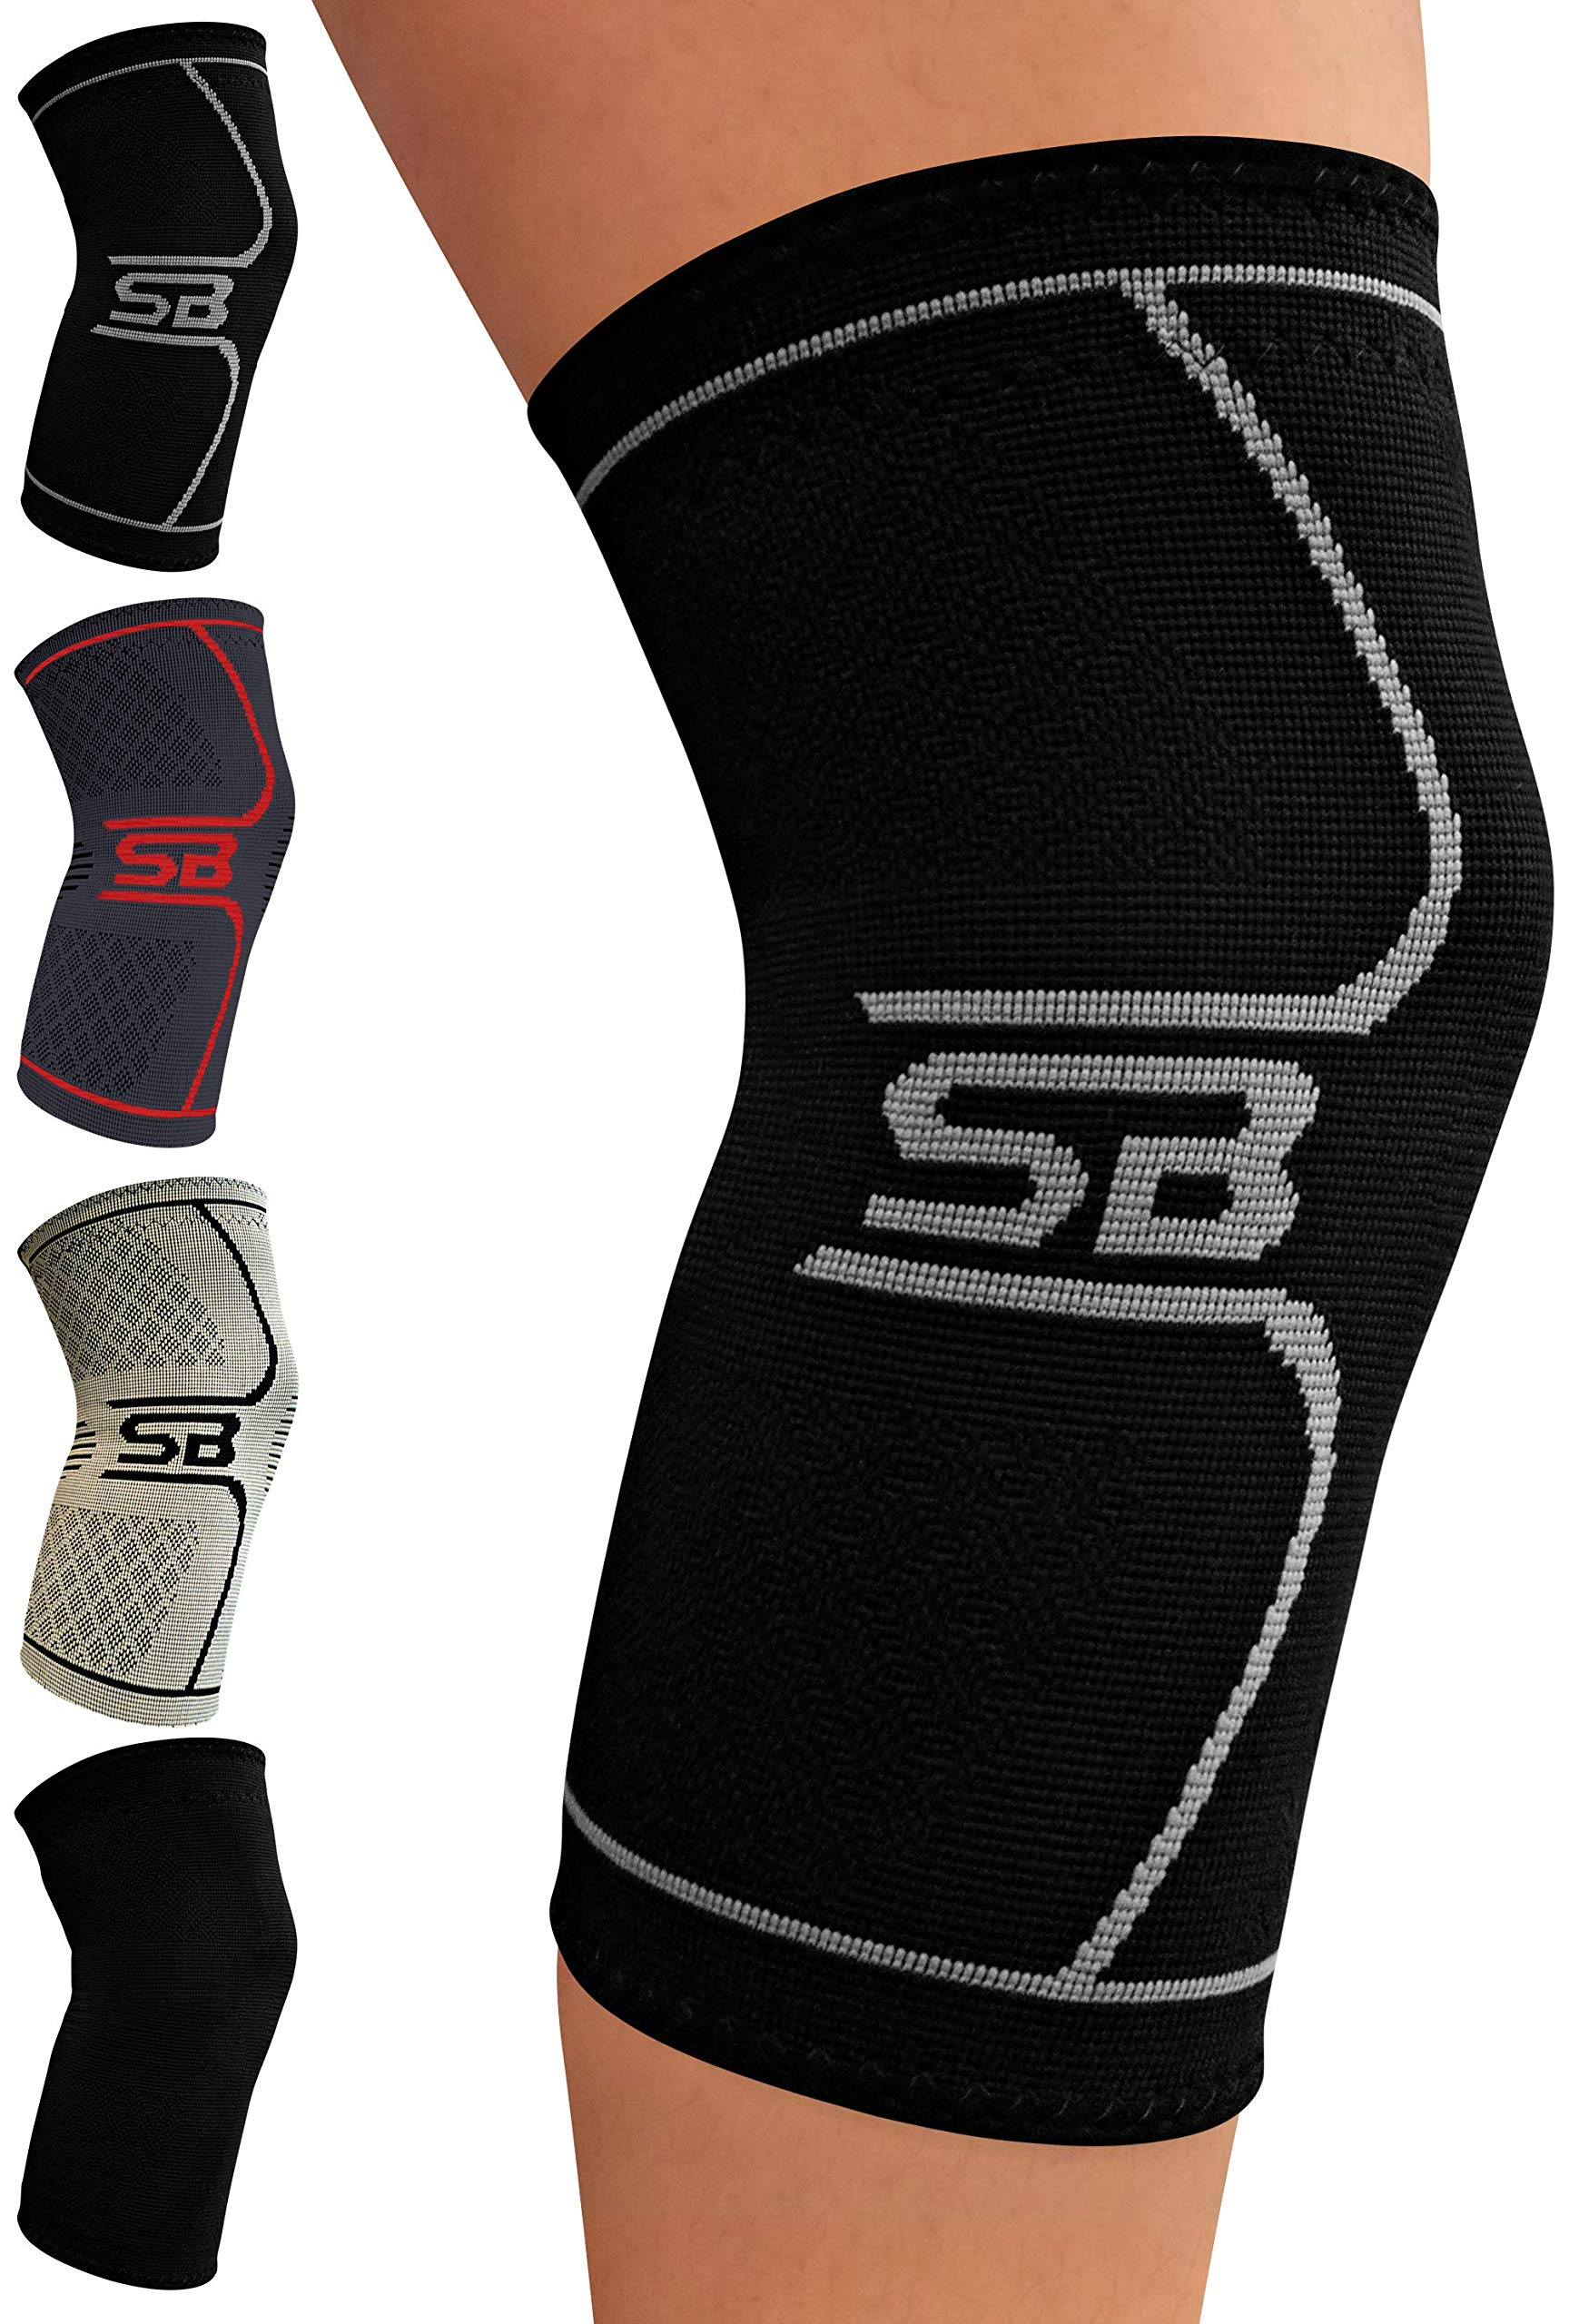 706ccb8c22 SB SOX Compression Knee Brace for Knee Pain - Braces and Supports Knee for  Pain Relief